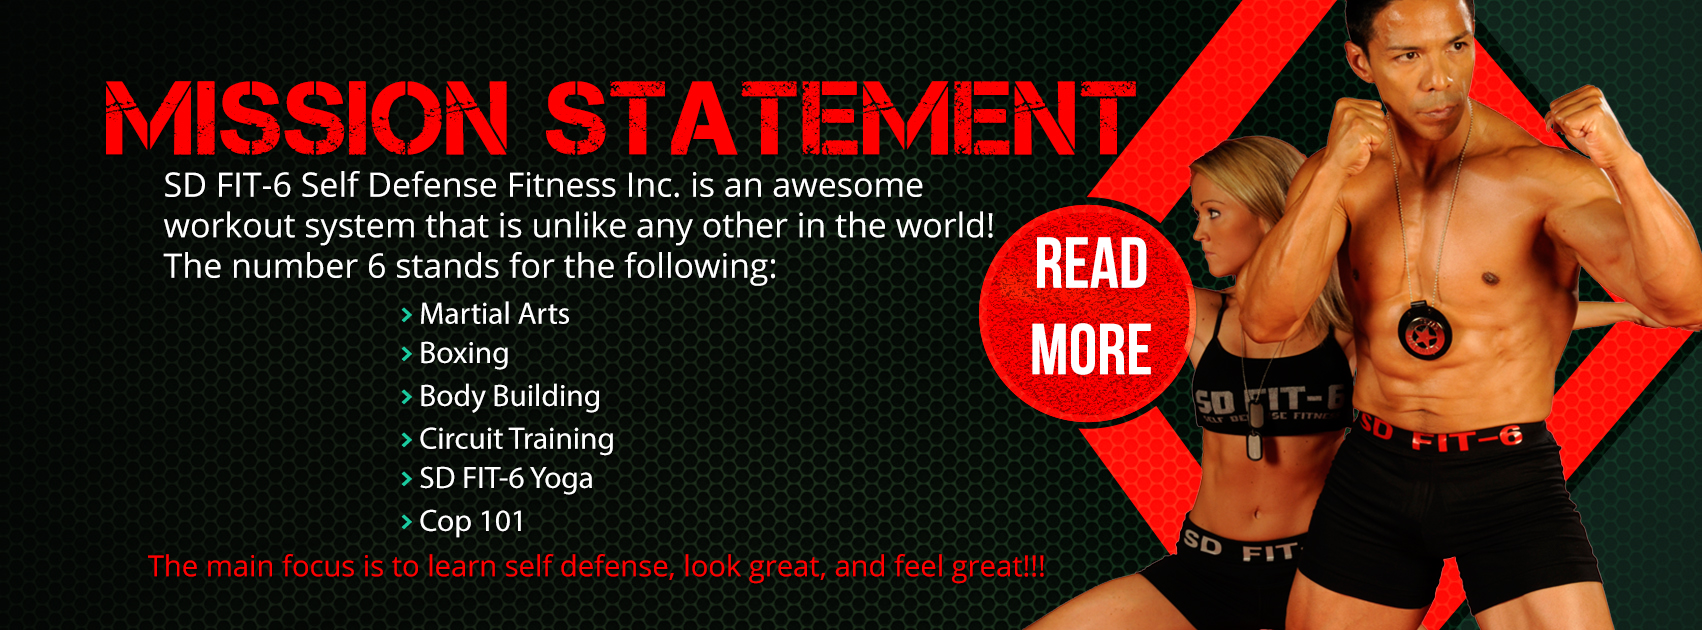 Mission Statement v2